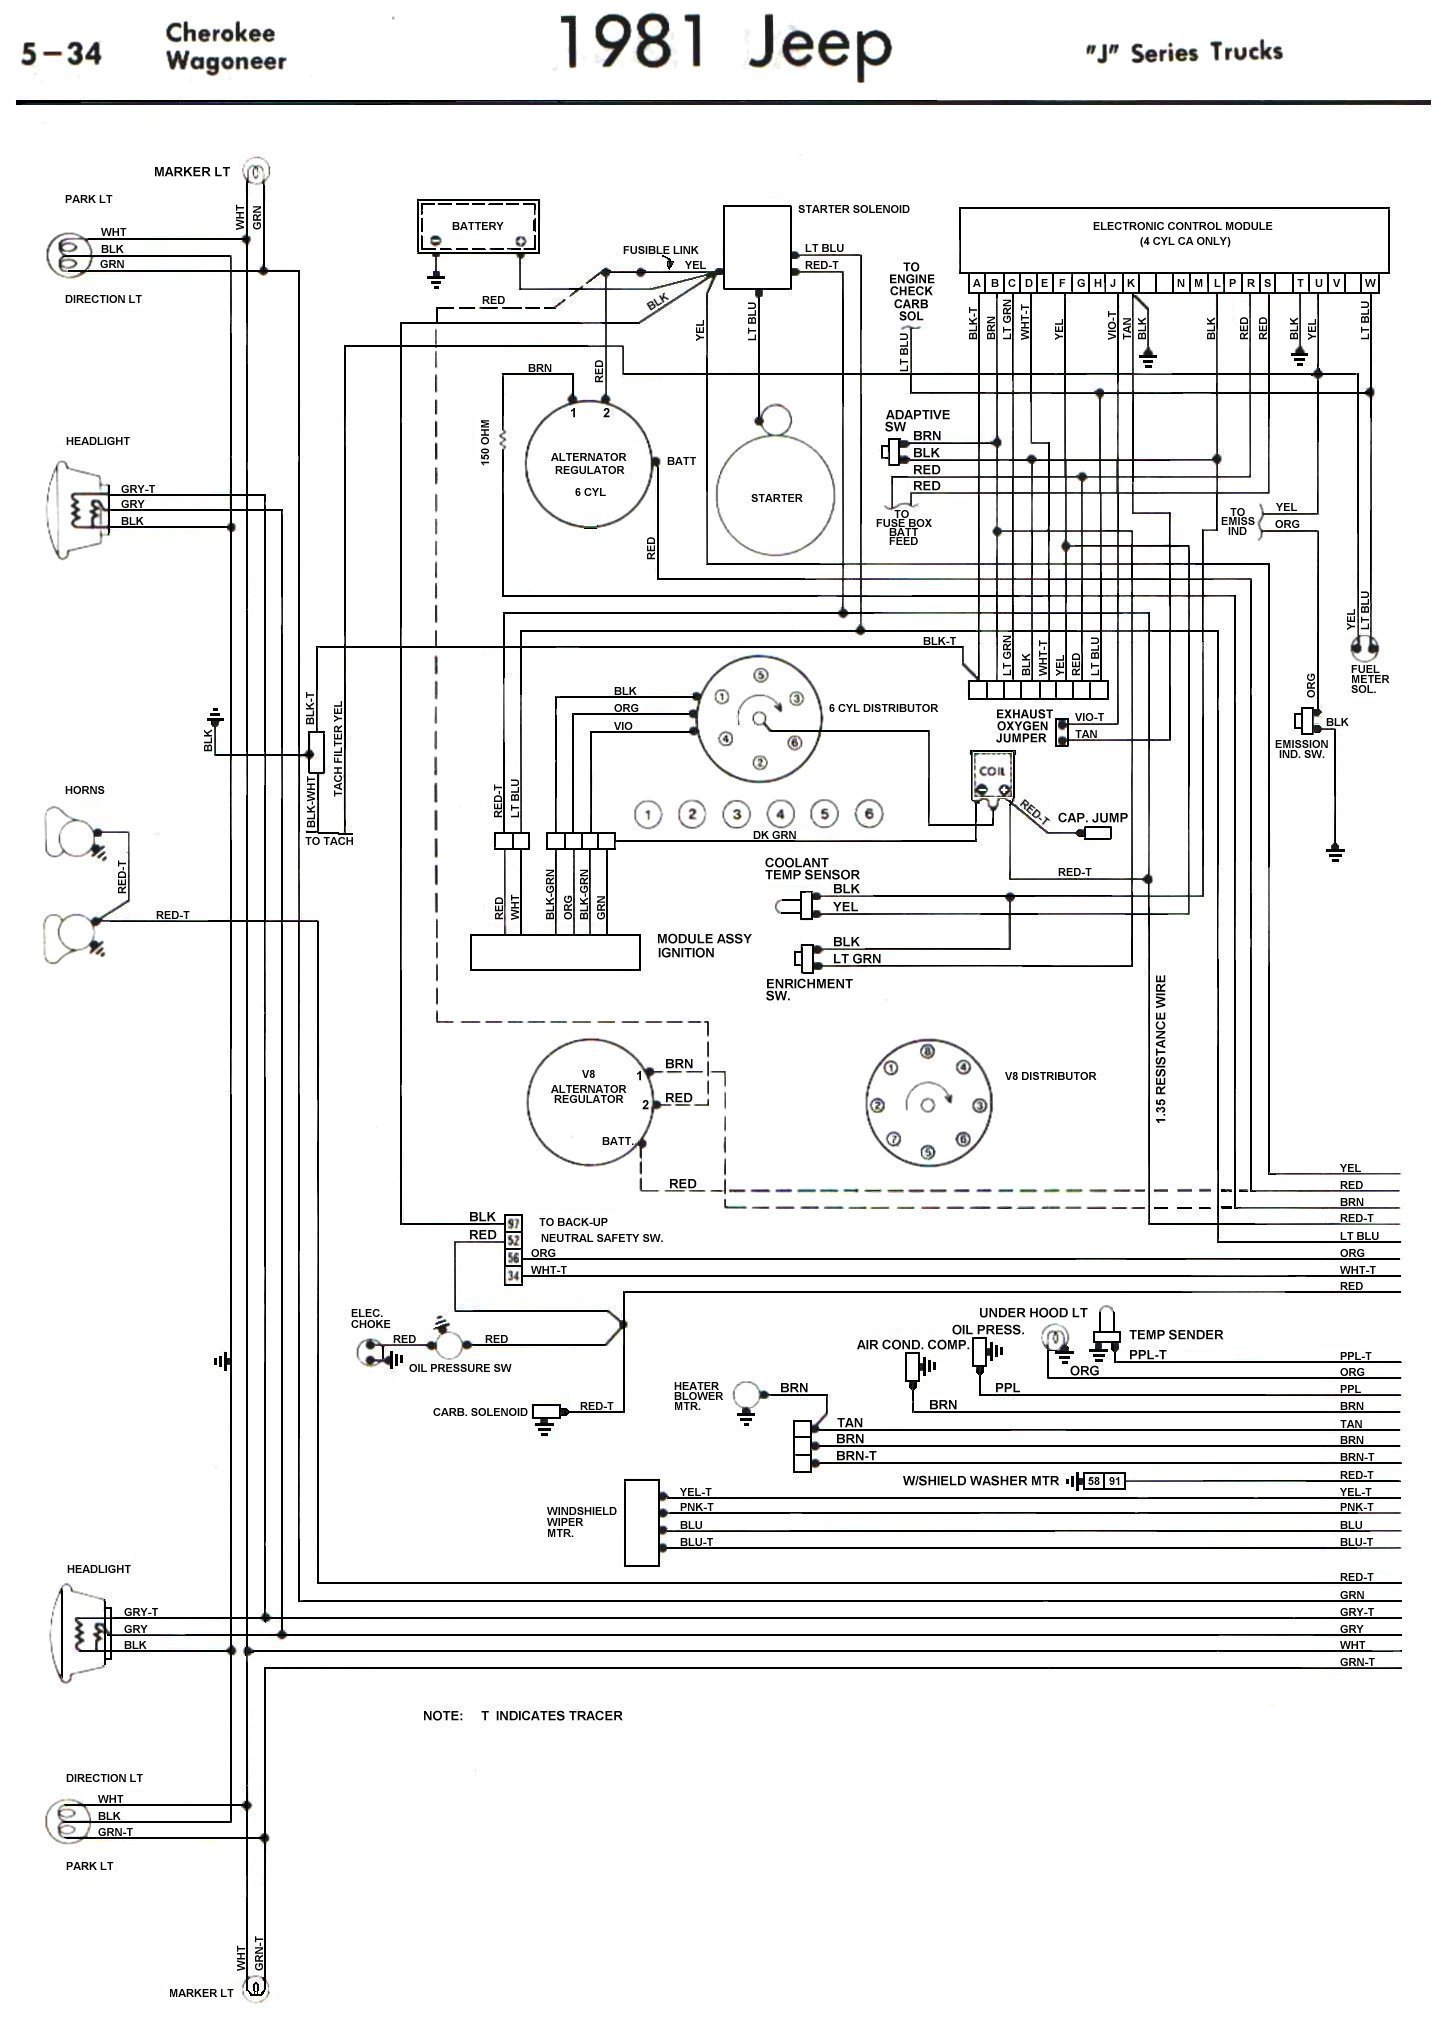 81_FSJ_WiringDiagramPage1 tom 'oljeep' collins fsj wiring page 1981 jeep cj5 wiring diagram at n-0.co